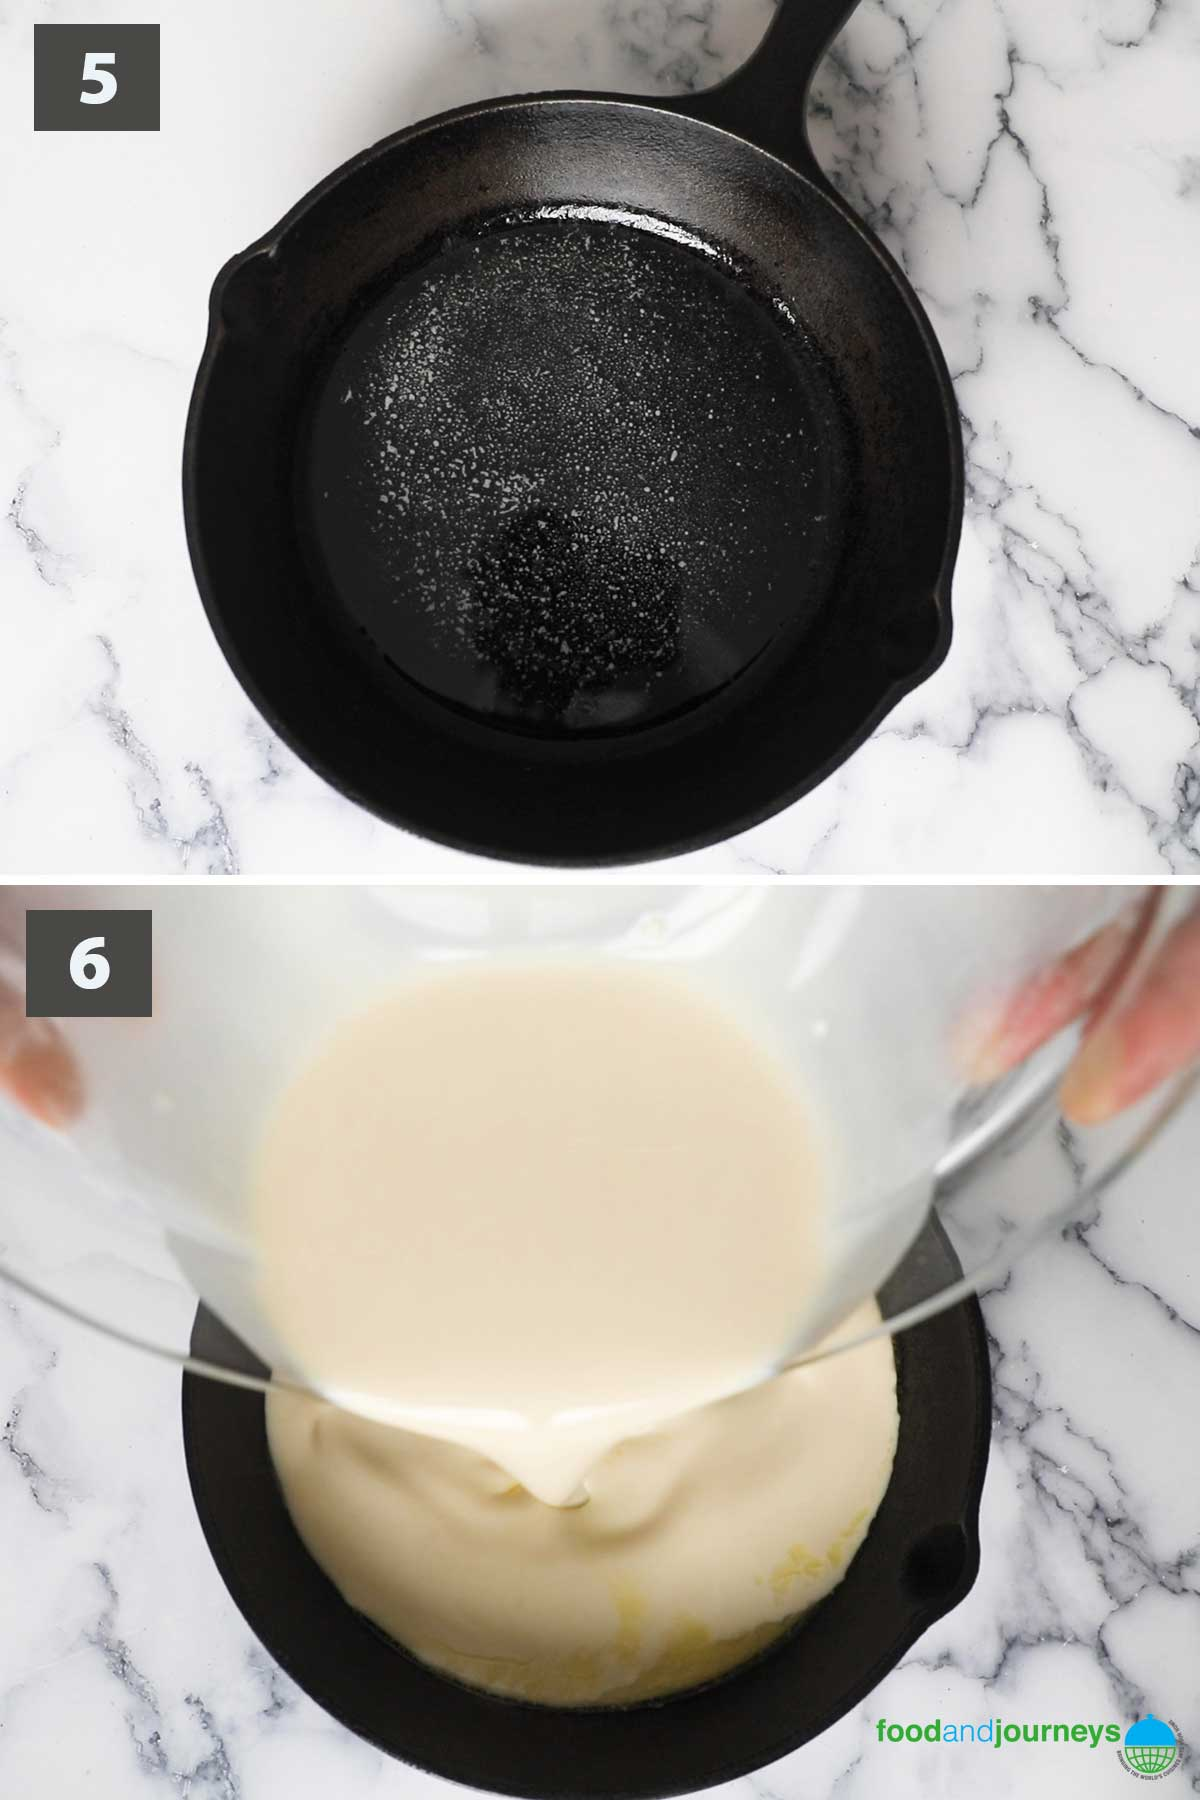 Second part of a collage of images showing the step by step process on how to make Finnish Oven-Baked Pancake at home.